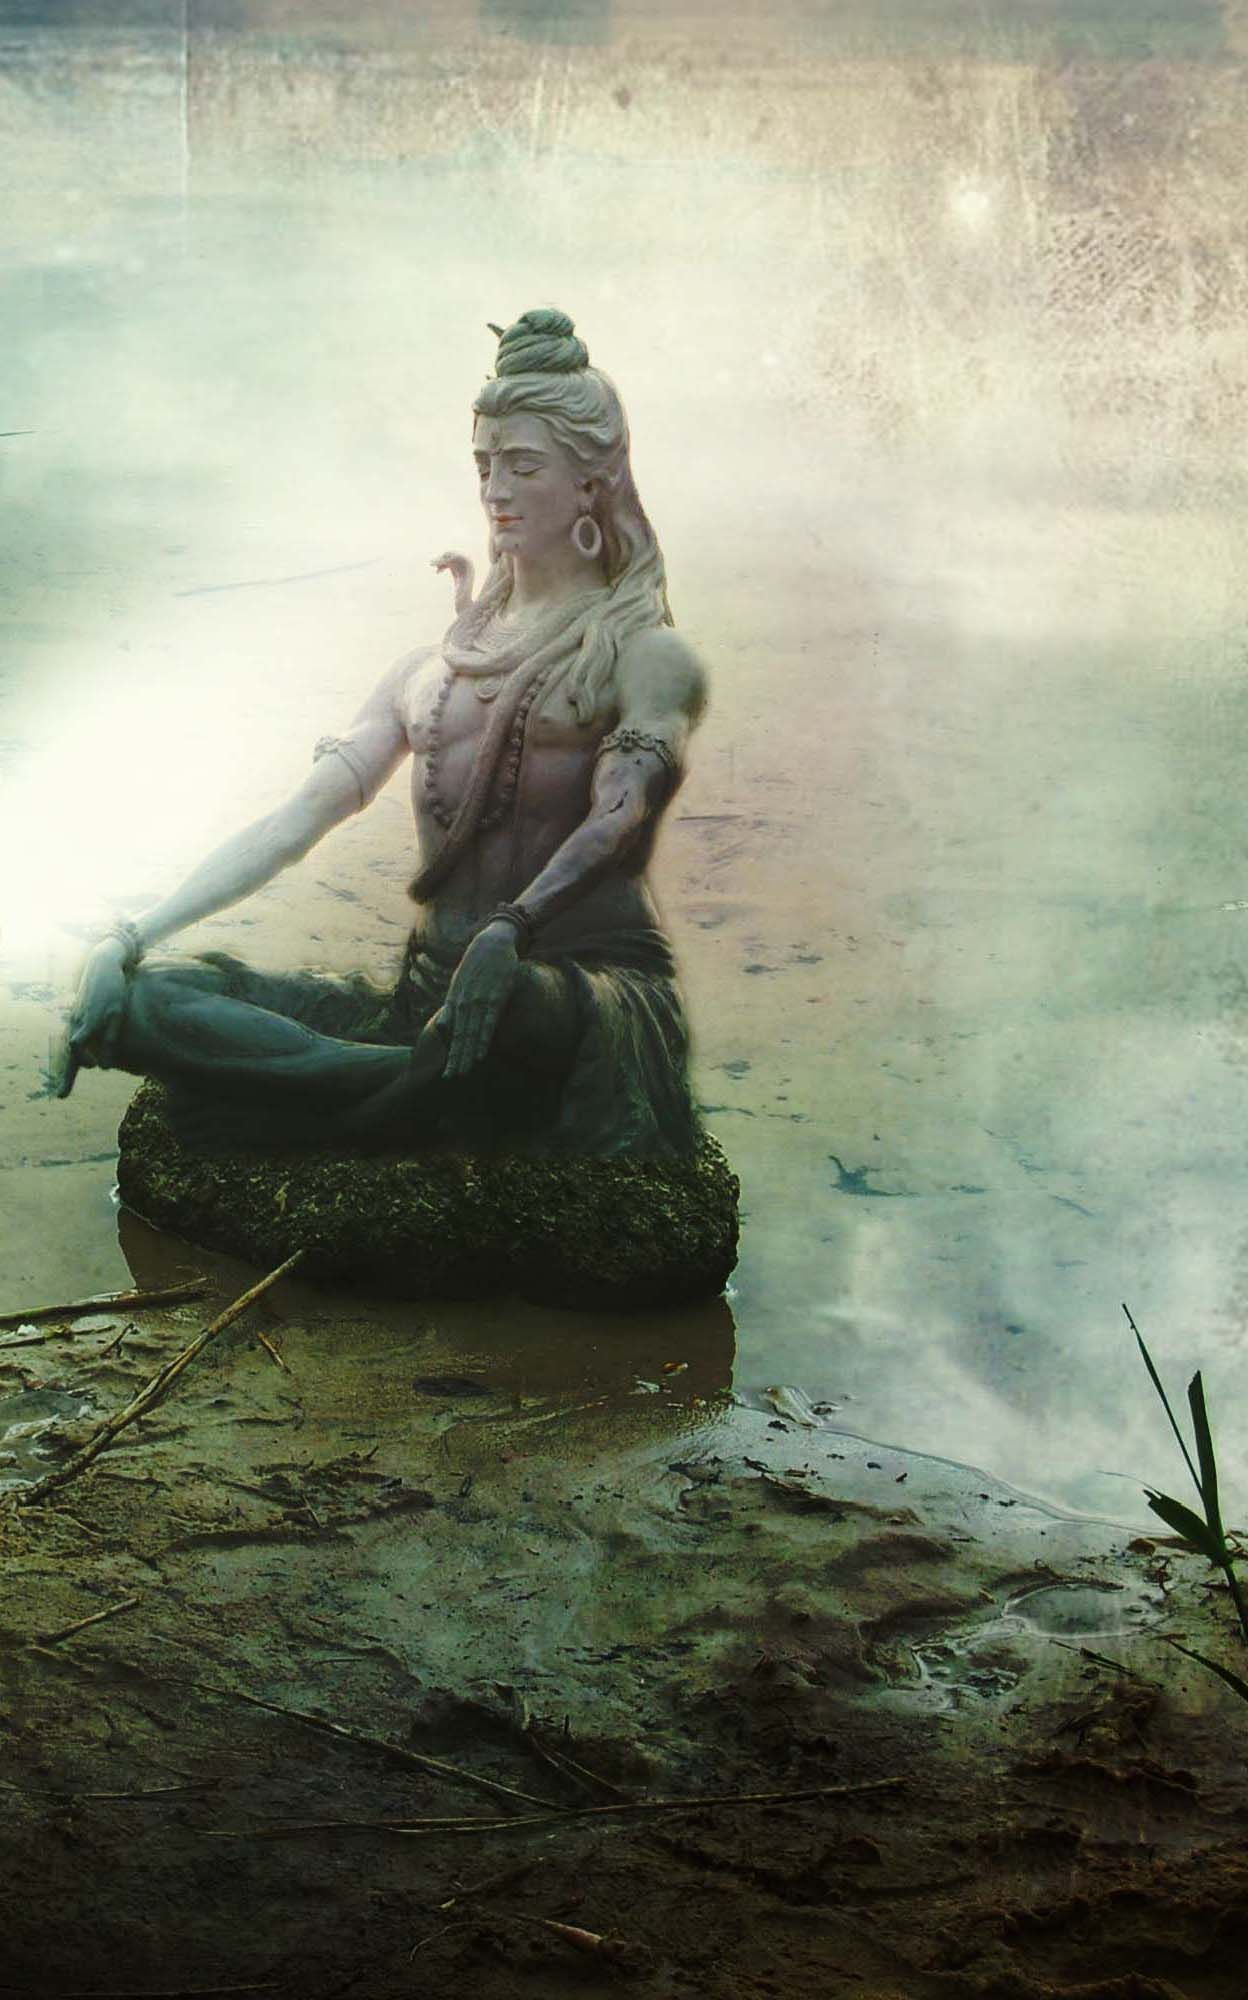 New 2017 Lord Shiva best hd iphone 7 wallpapers free  iPhone   iPhone 7 Wallpapers  Iphone